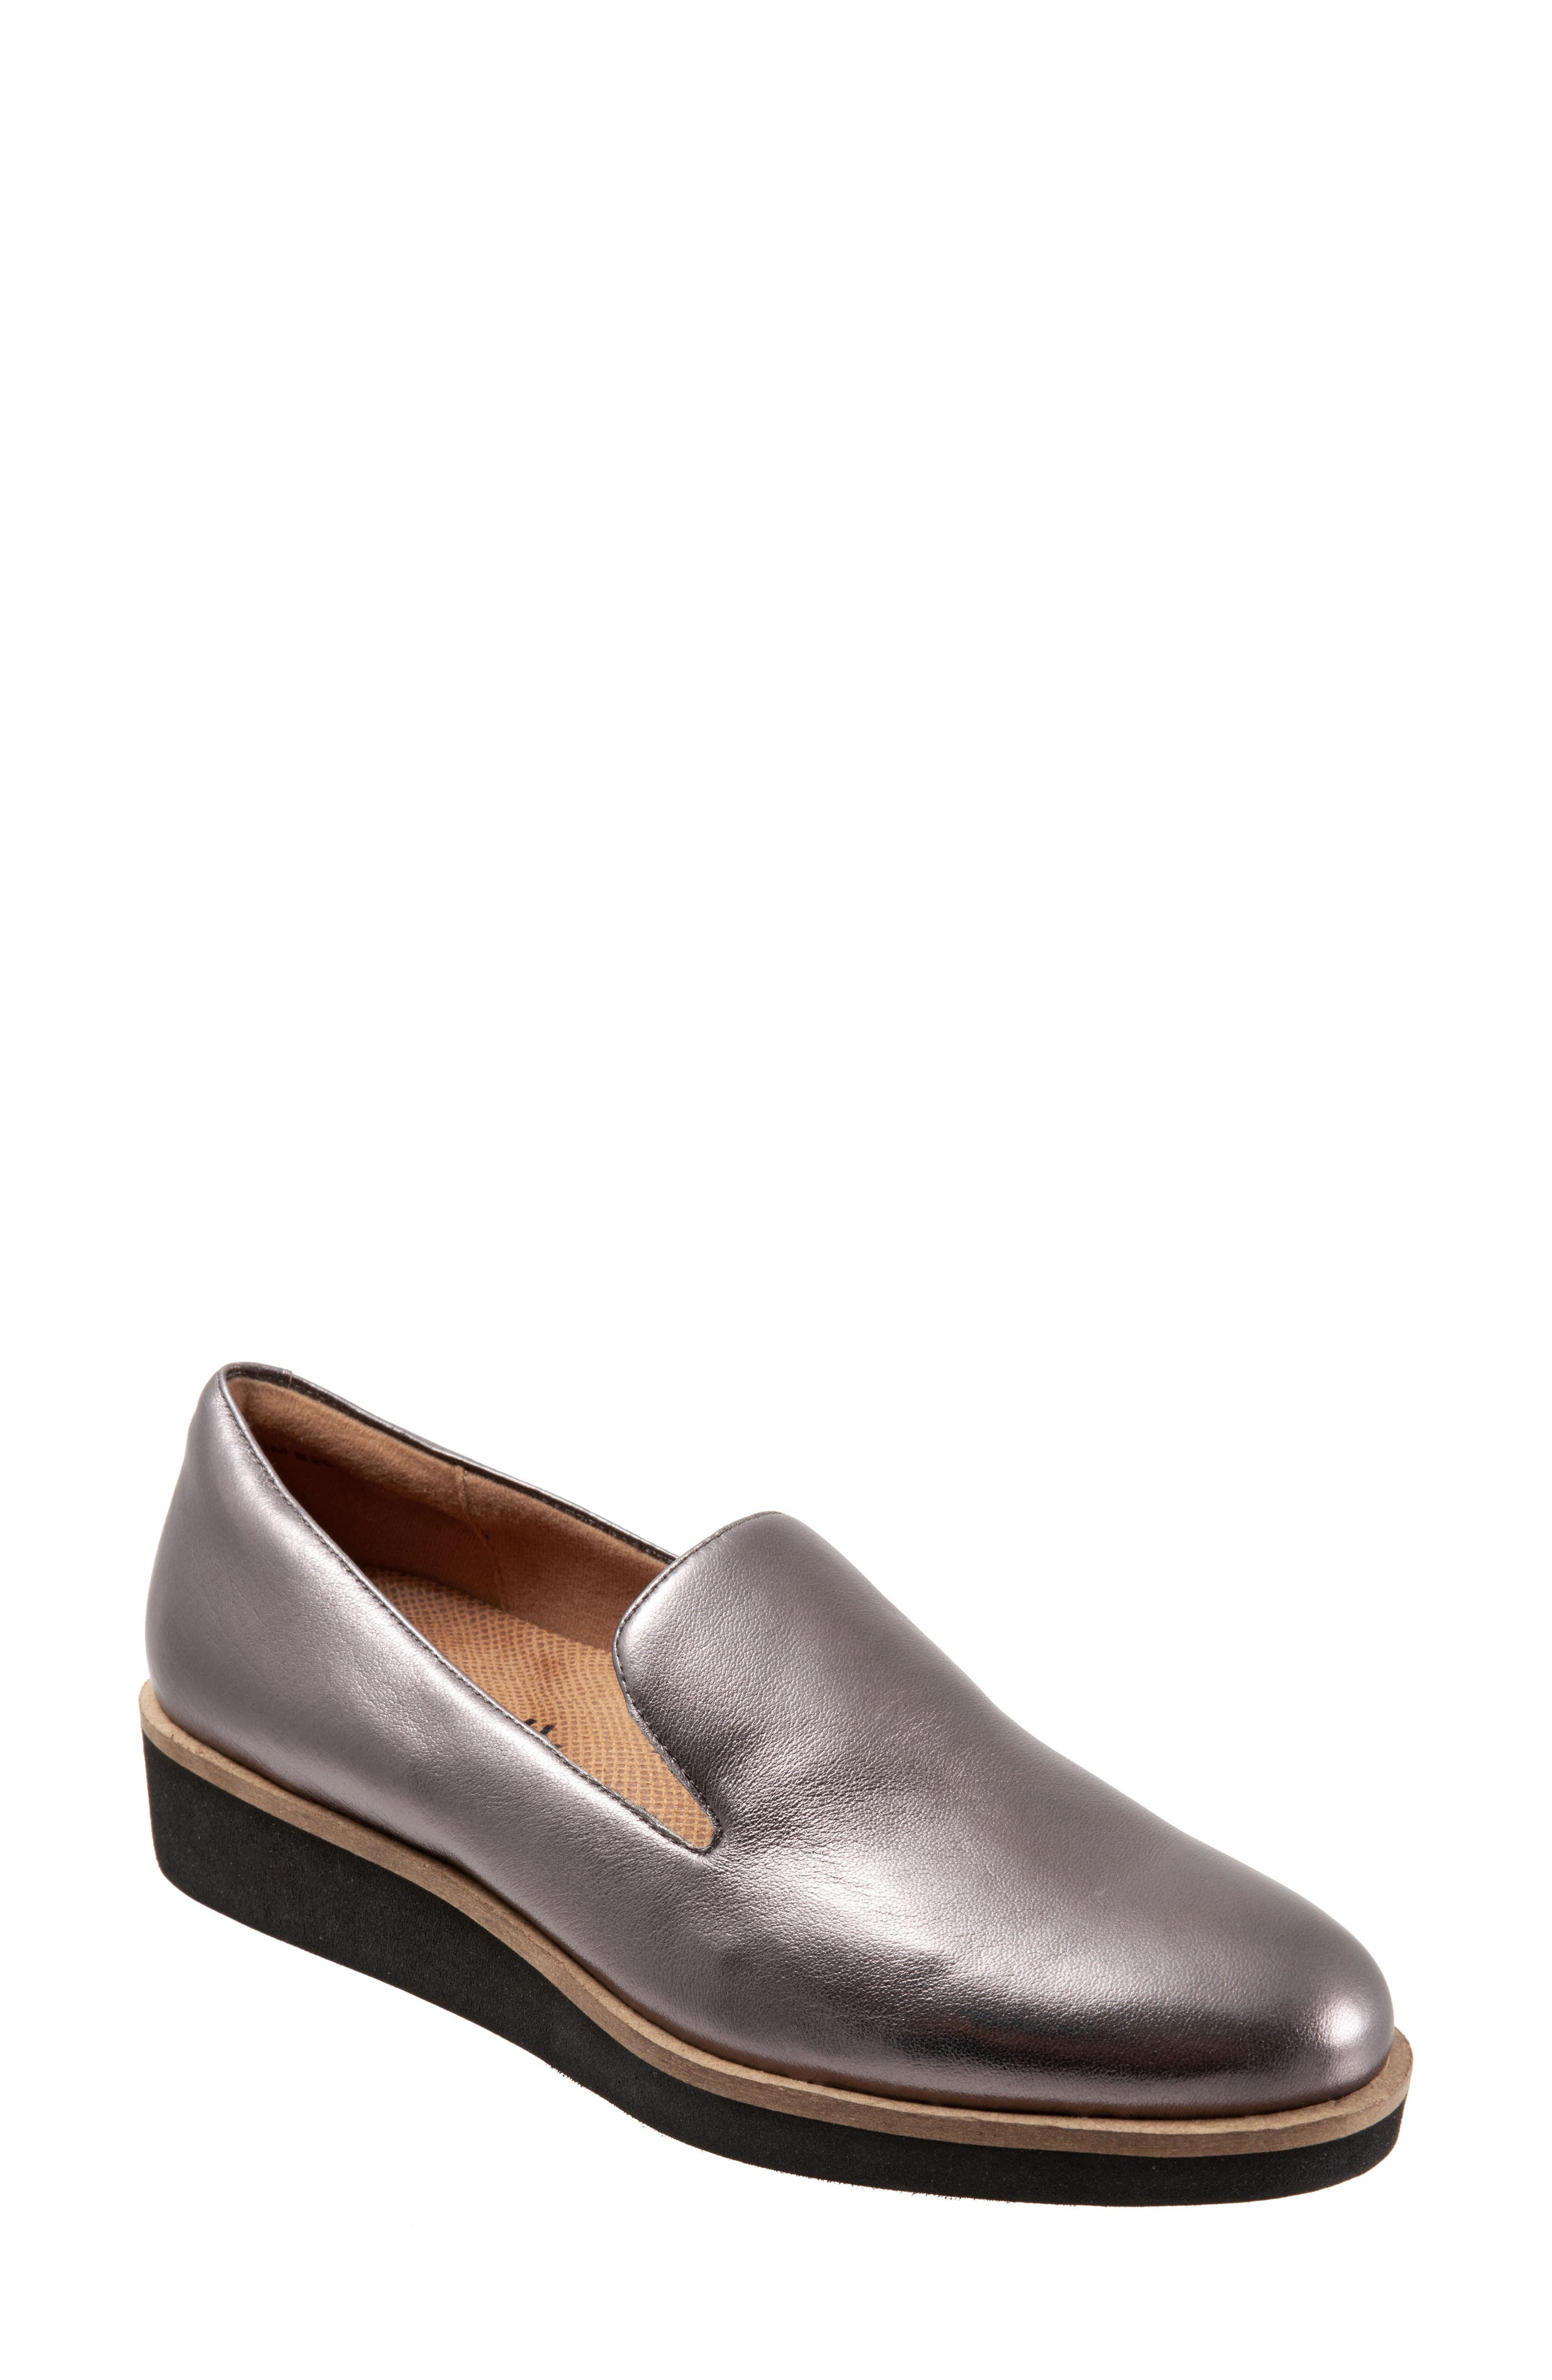 A sophisticated staple for the office and beyond, this leather loafter is finished with contrasting trim and a low heel. Style Name: Softwalk Westport Leather Loafer (Women). Style Number: 6129008. Available in stores.